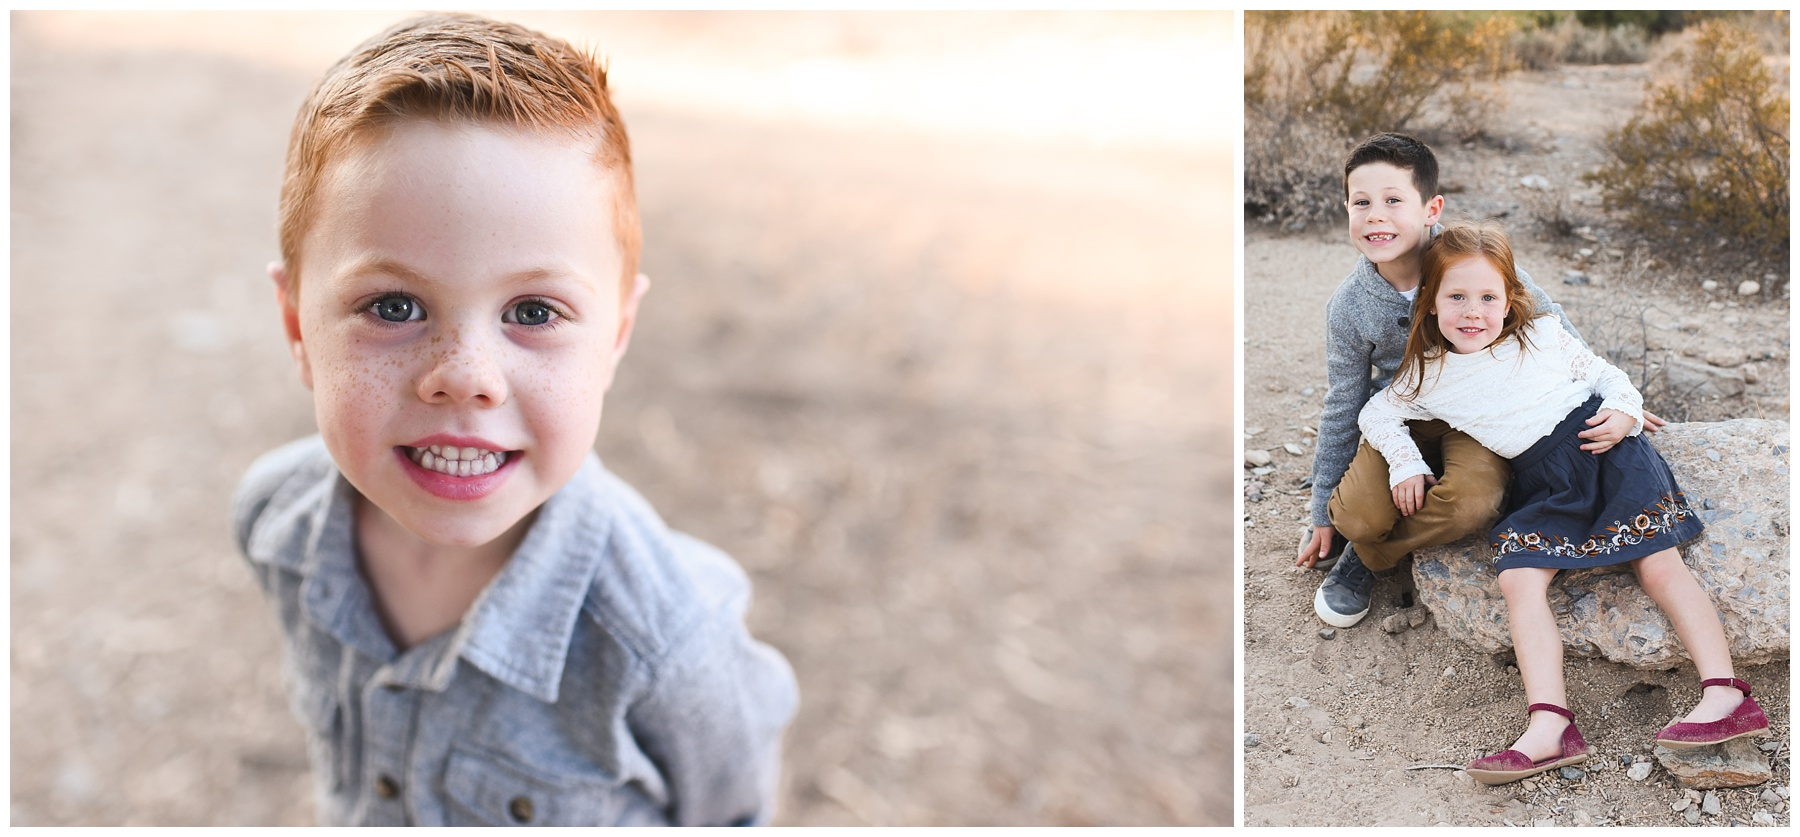 Child Portrait | Phoenix Lifestyle Family Portraits